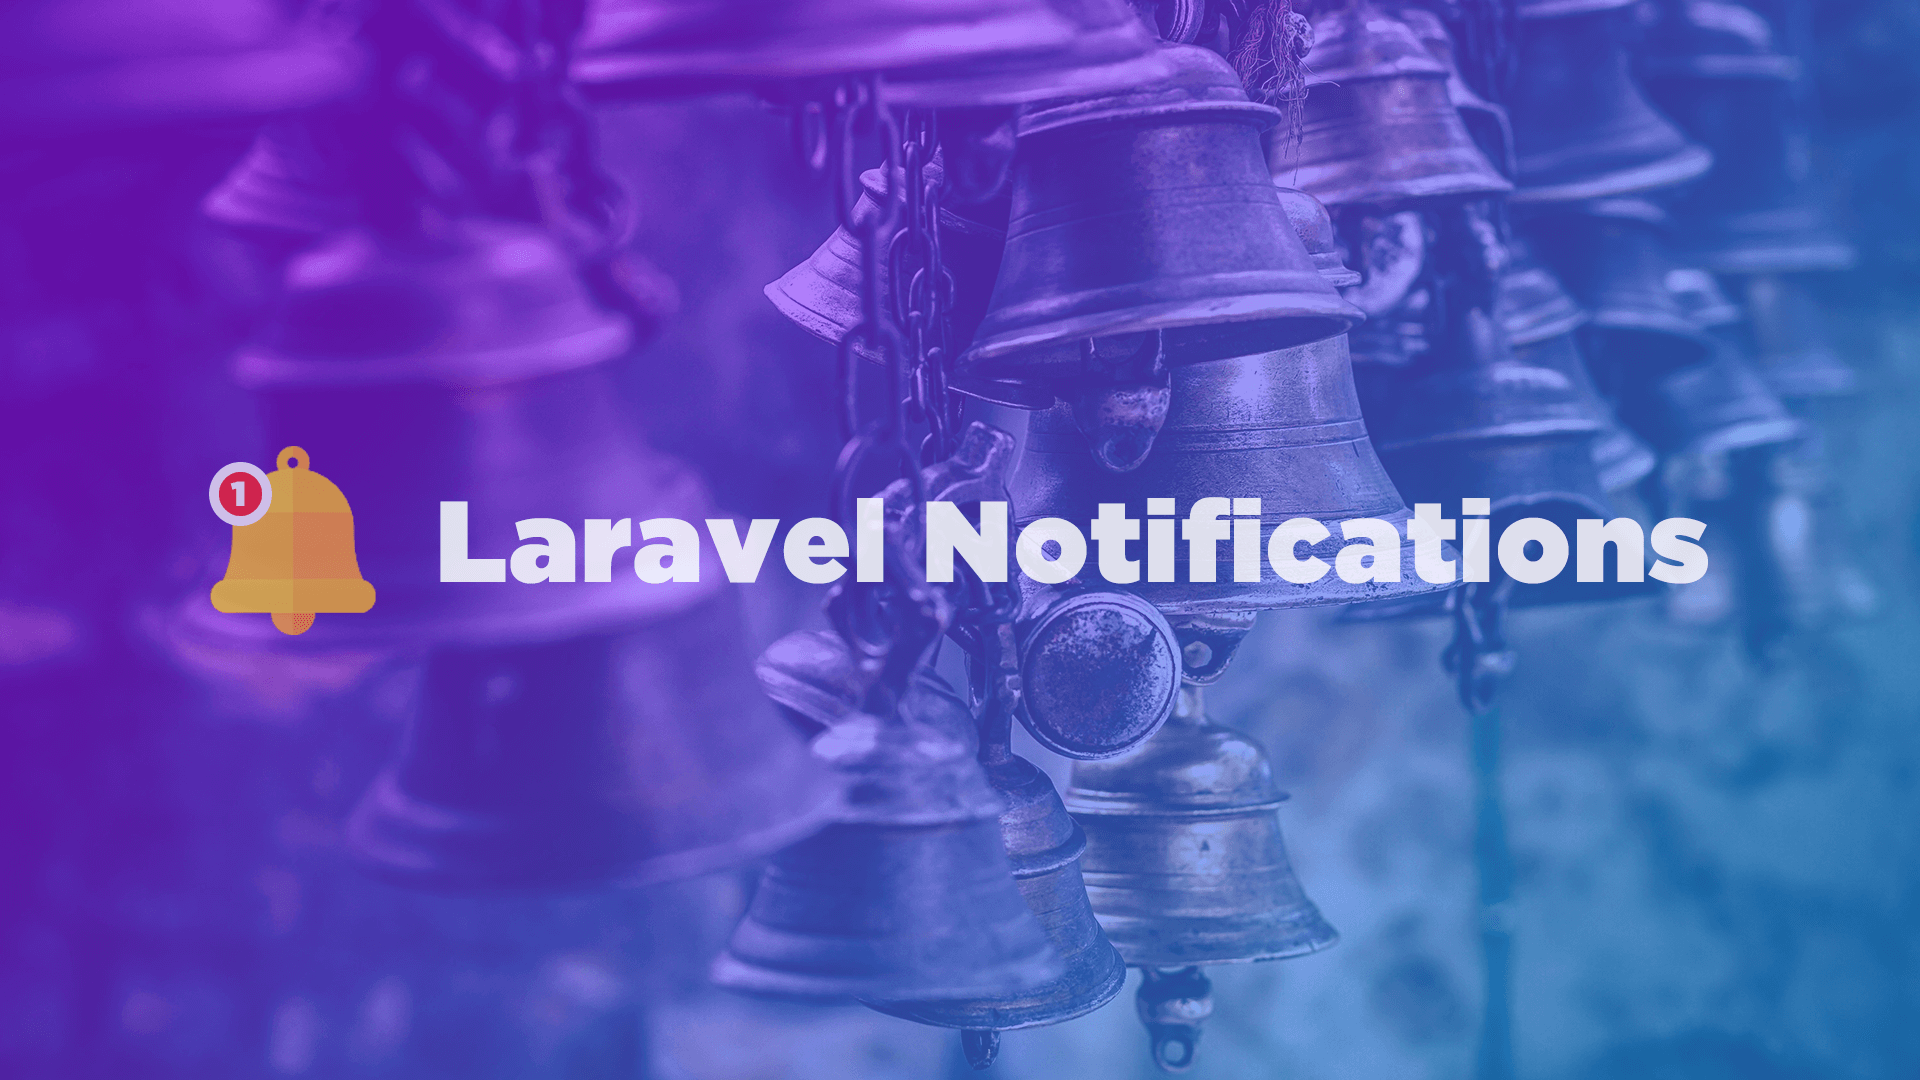 Laravel Notifications